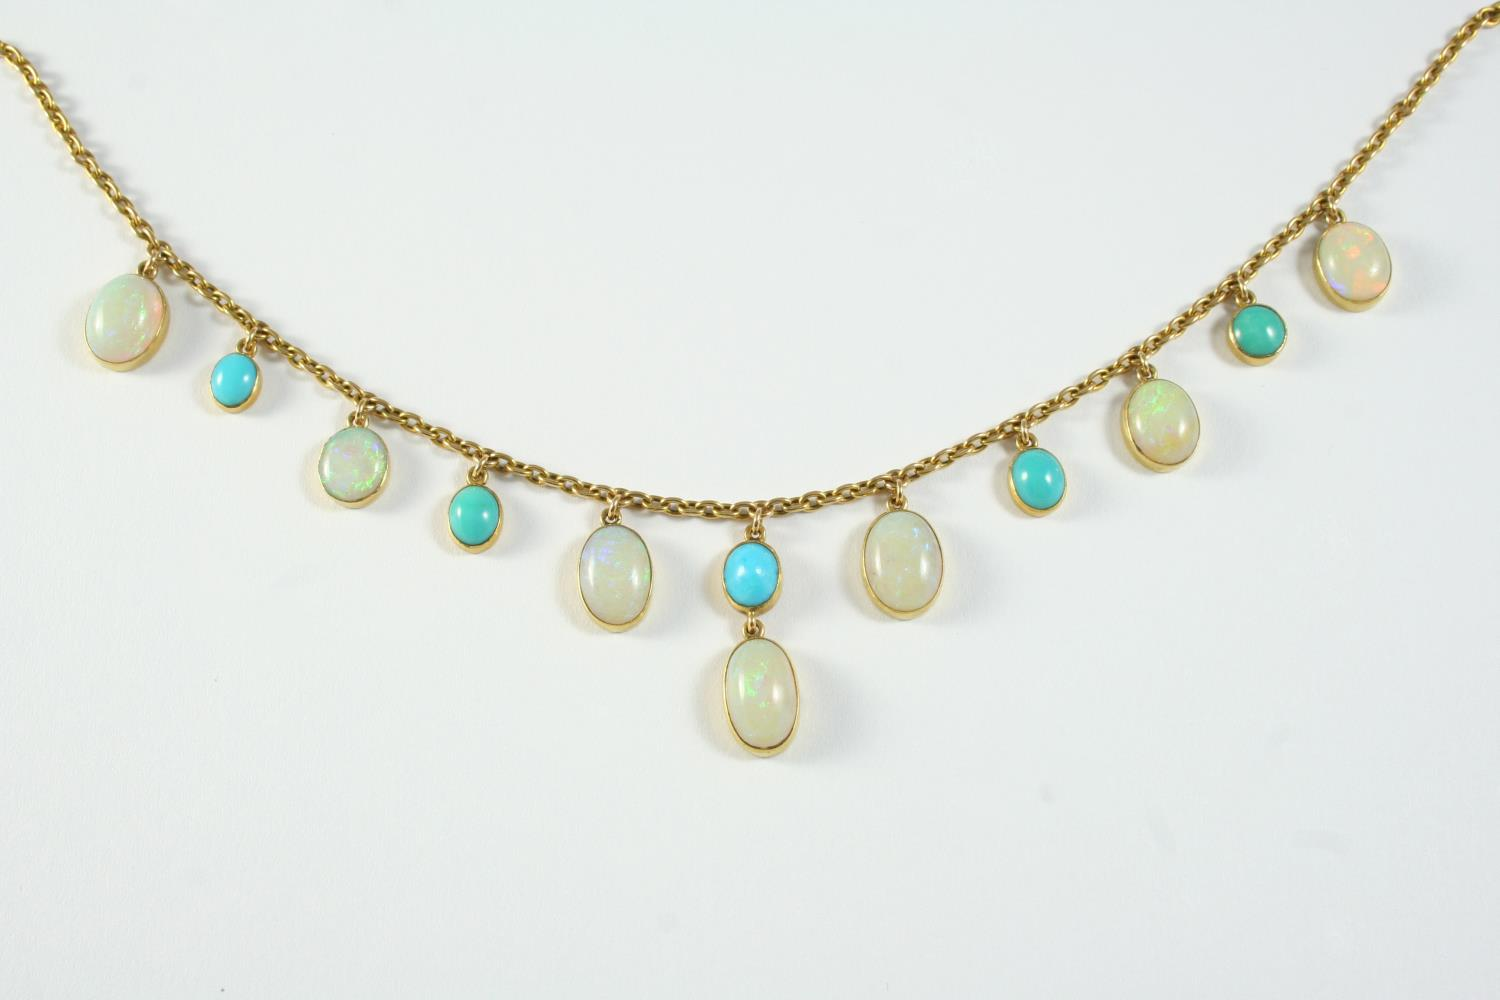 AN OPAL AND TURQUOISE DROP NECKLACE the 9ct gold oval link chain supends seven oval-shaped solid